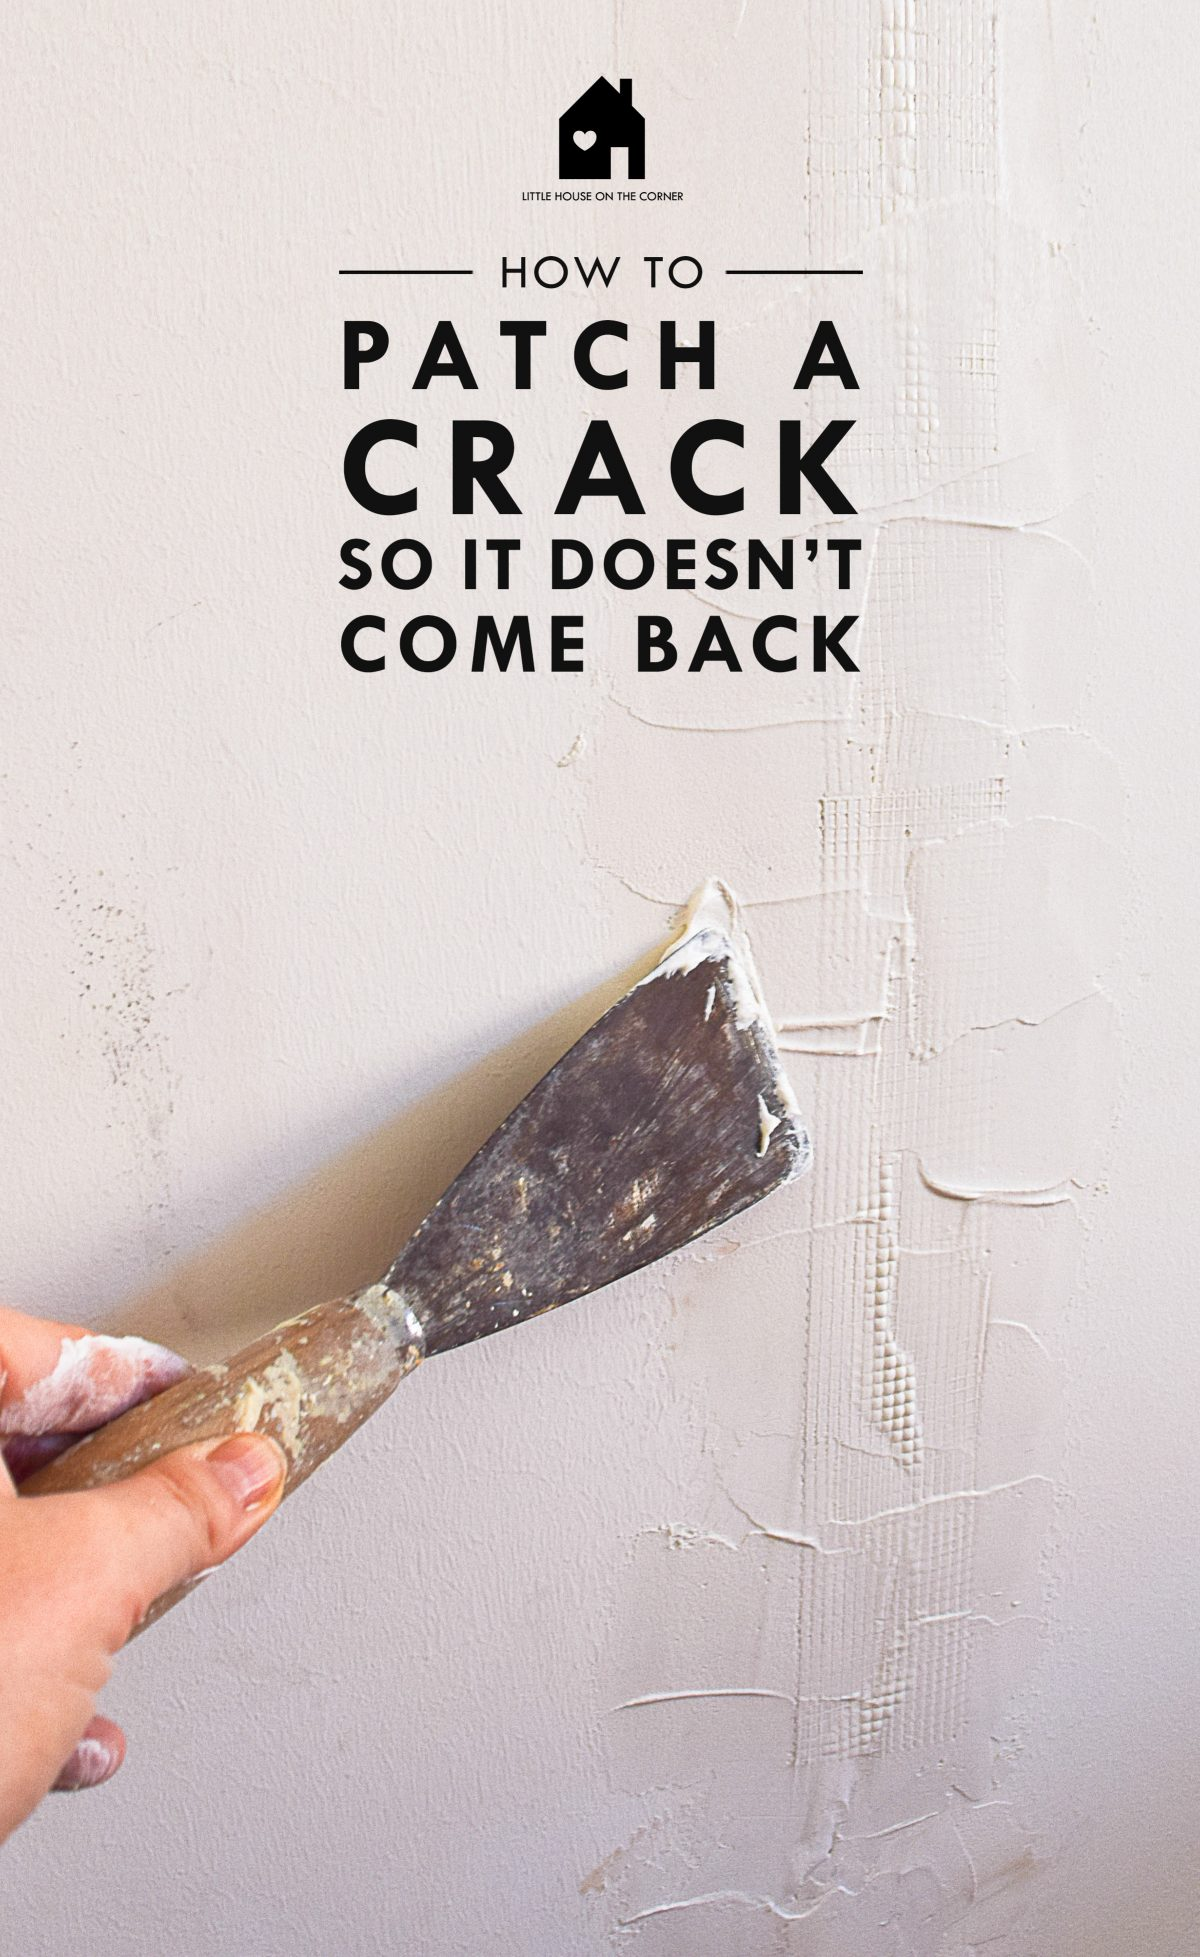 How To Patch A Crack So It Doesn't Come Back | Little House On The Corner